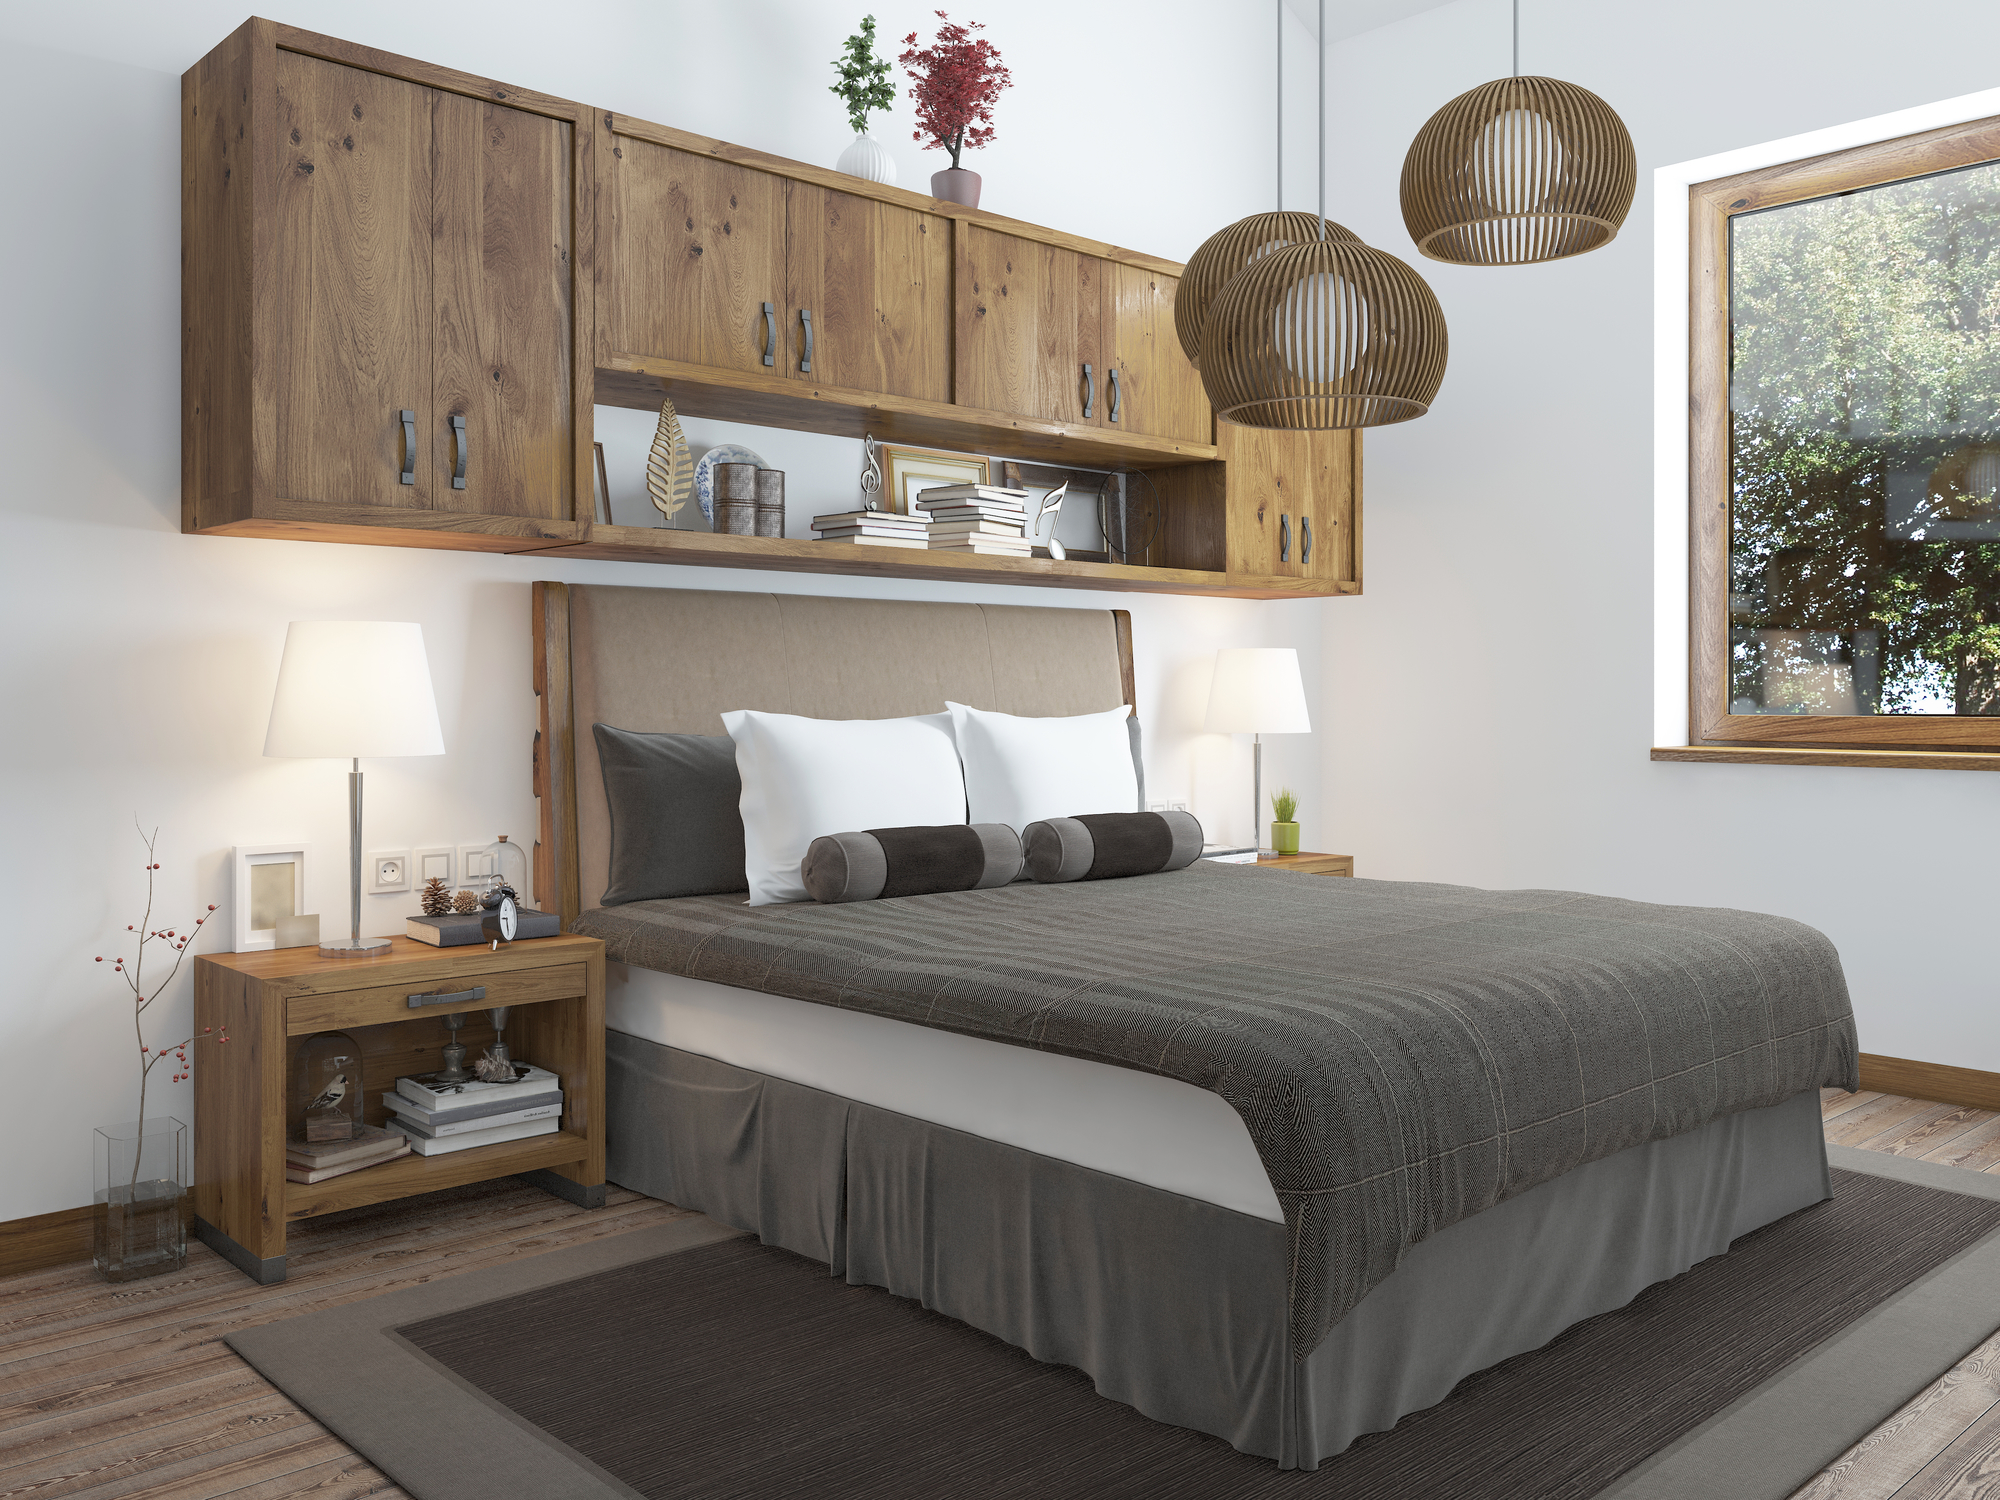 How to Update Your Bedroom Set Design - Midwest Clearance Center ...